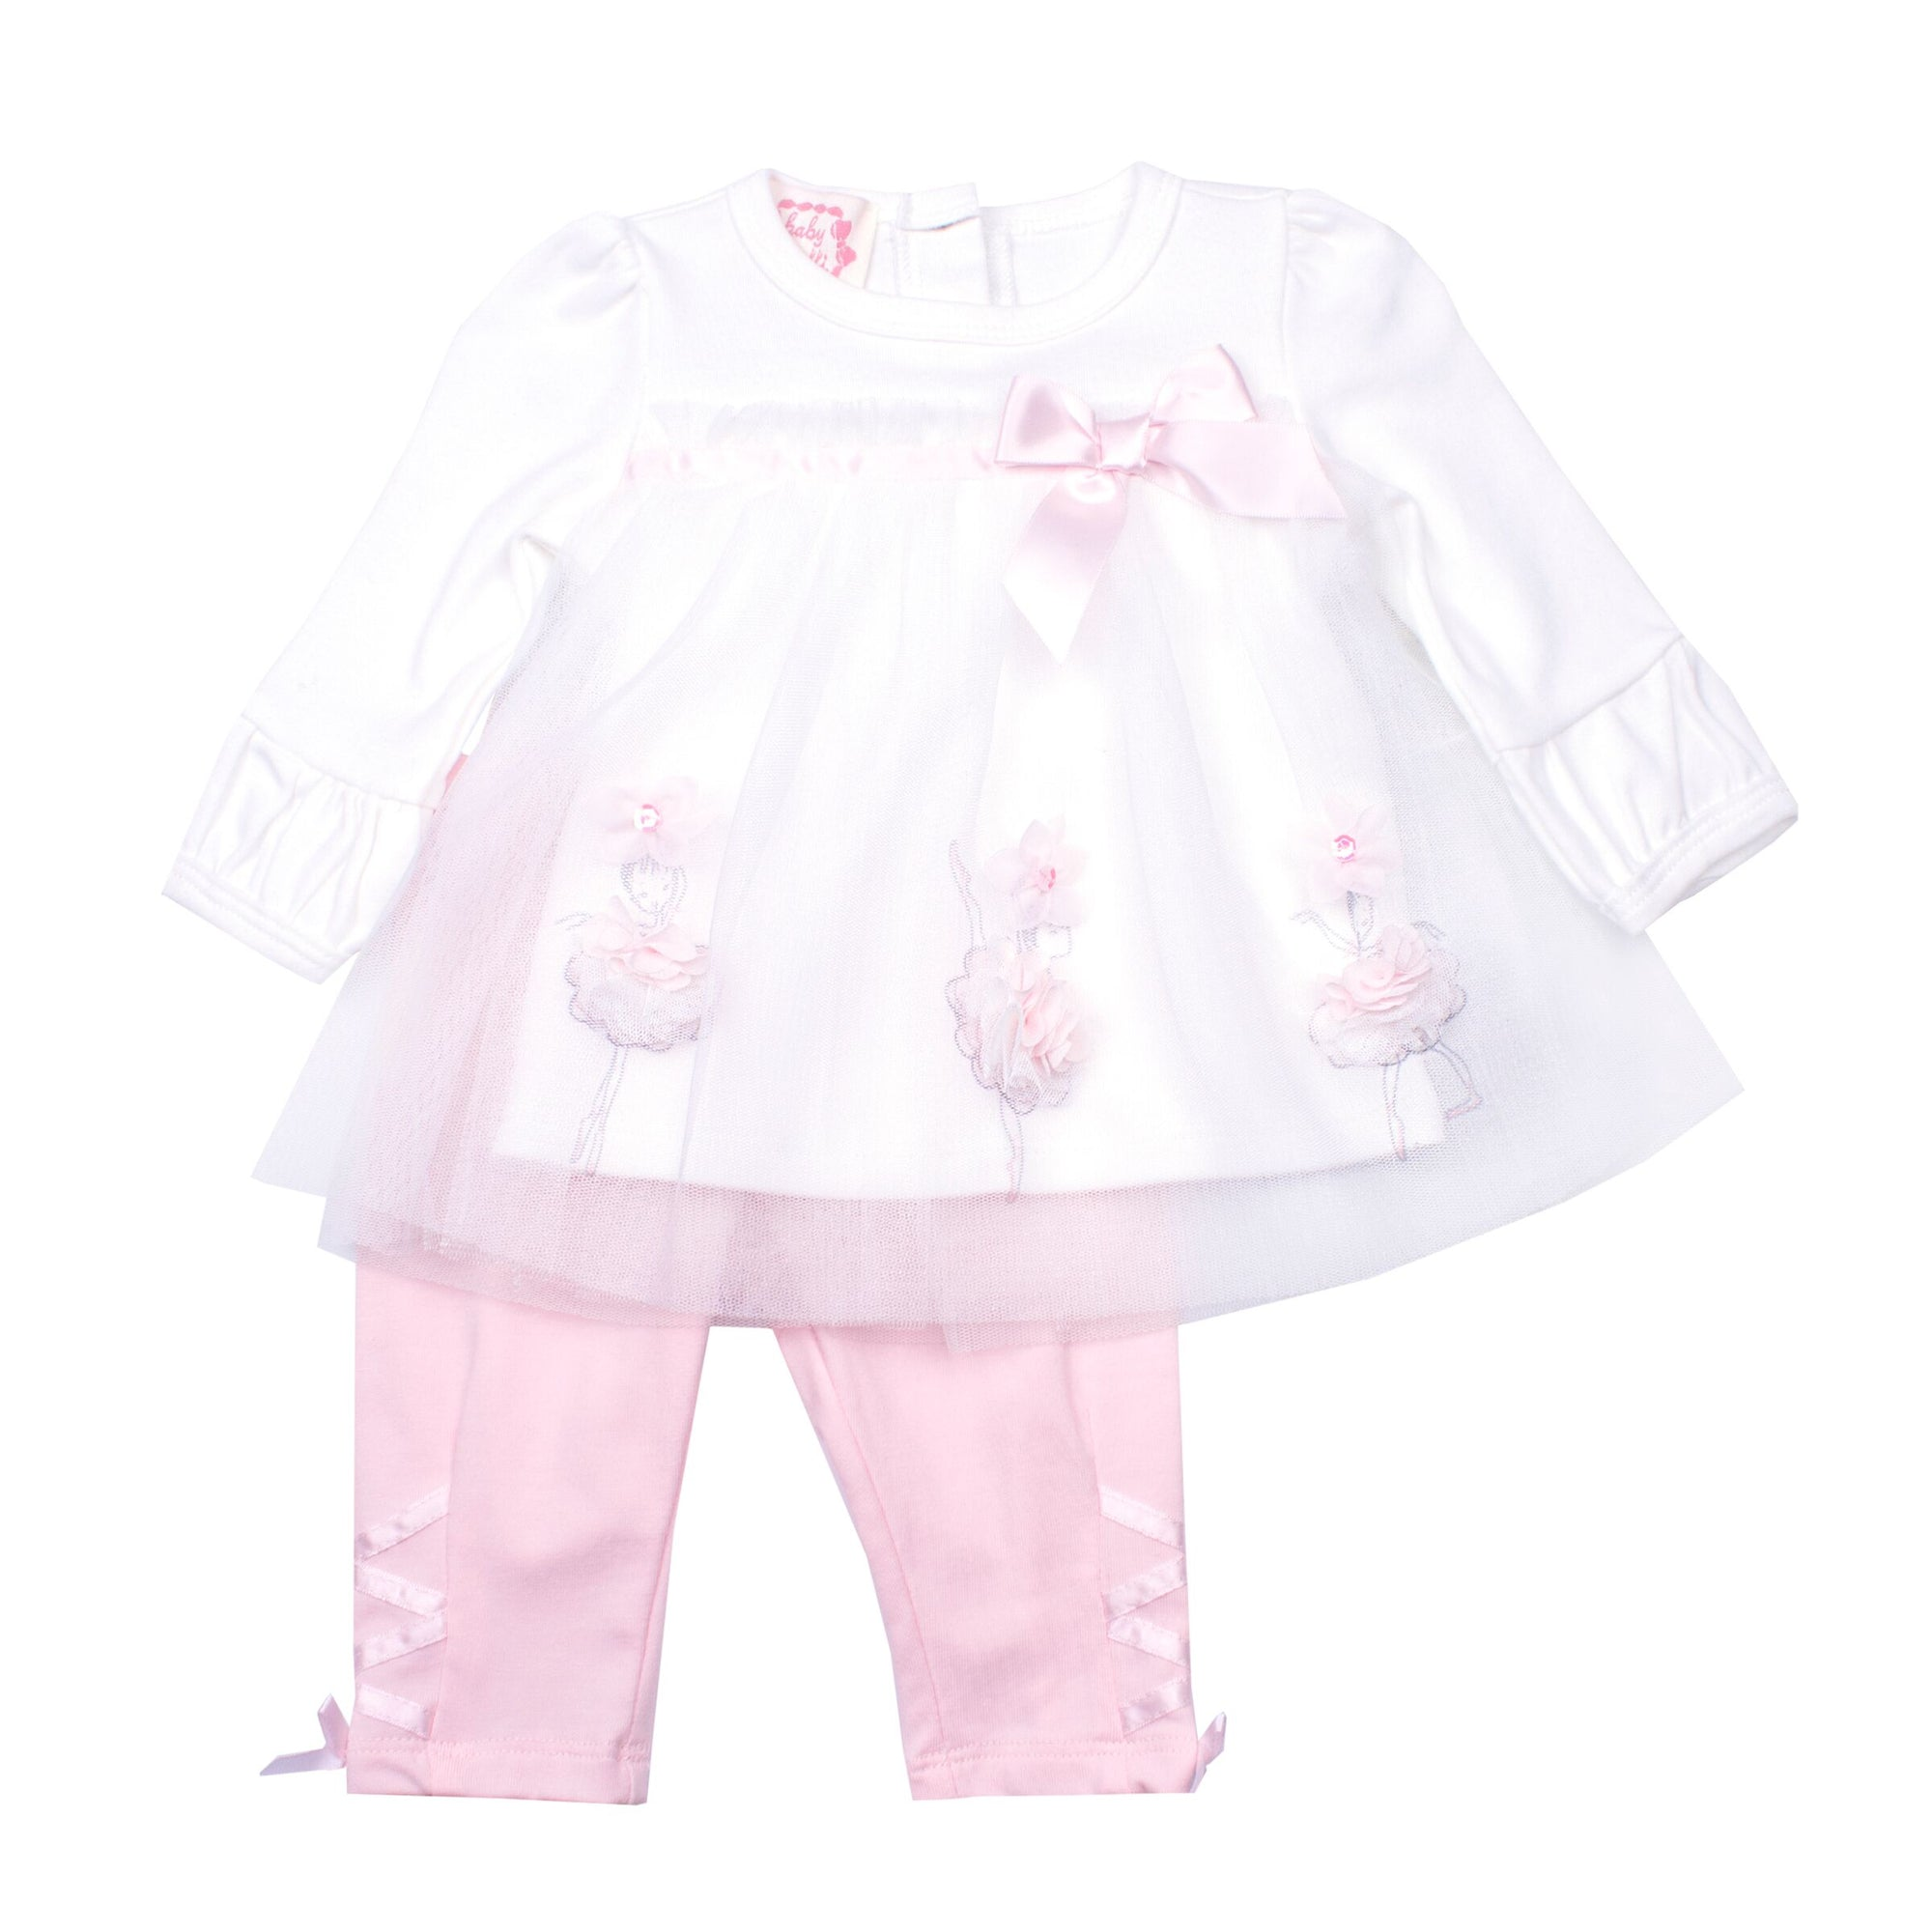 Baby Girls Pink & White Leggings Set